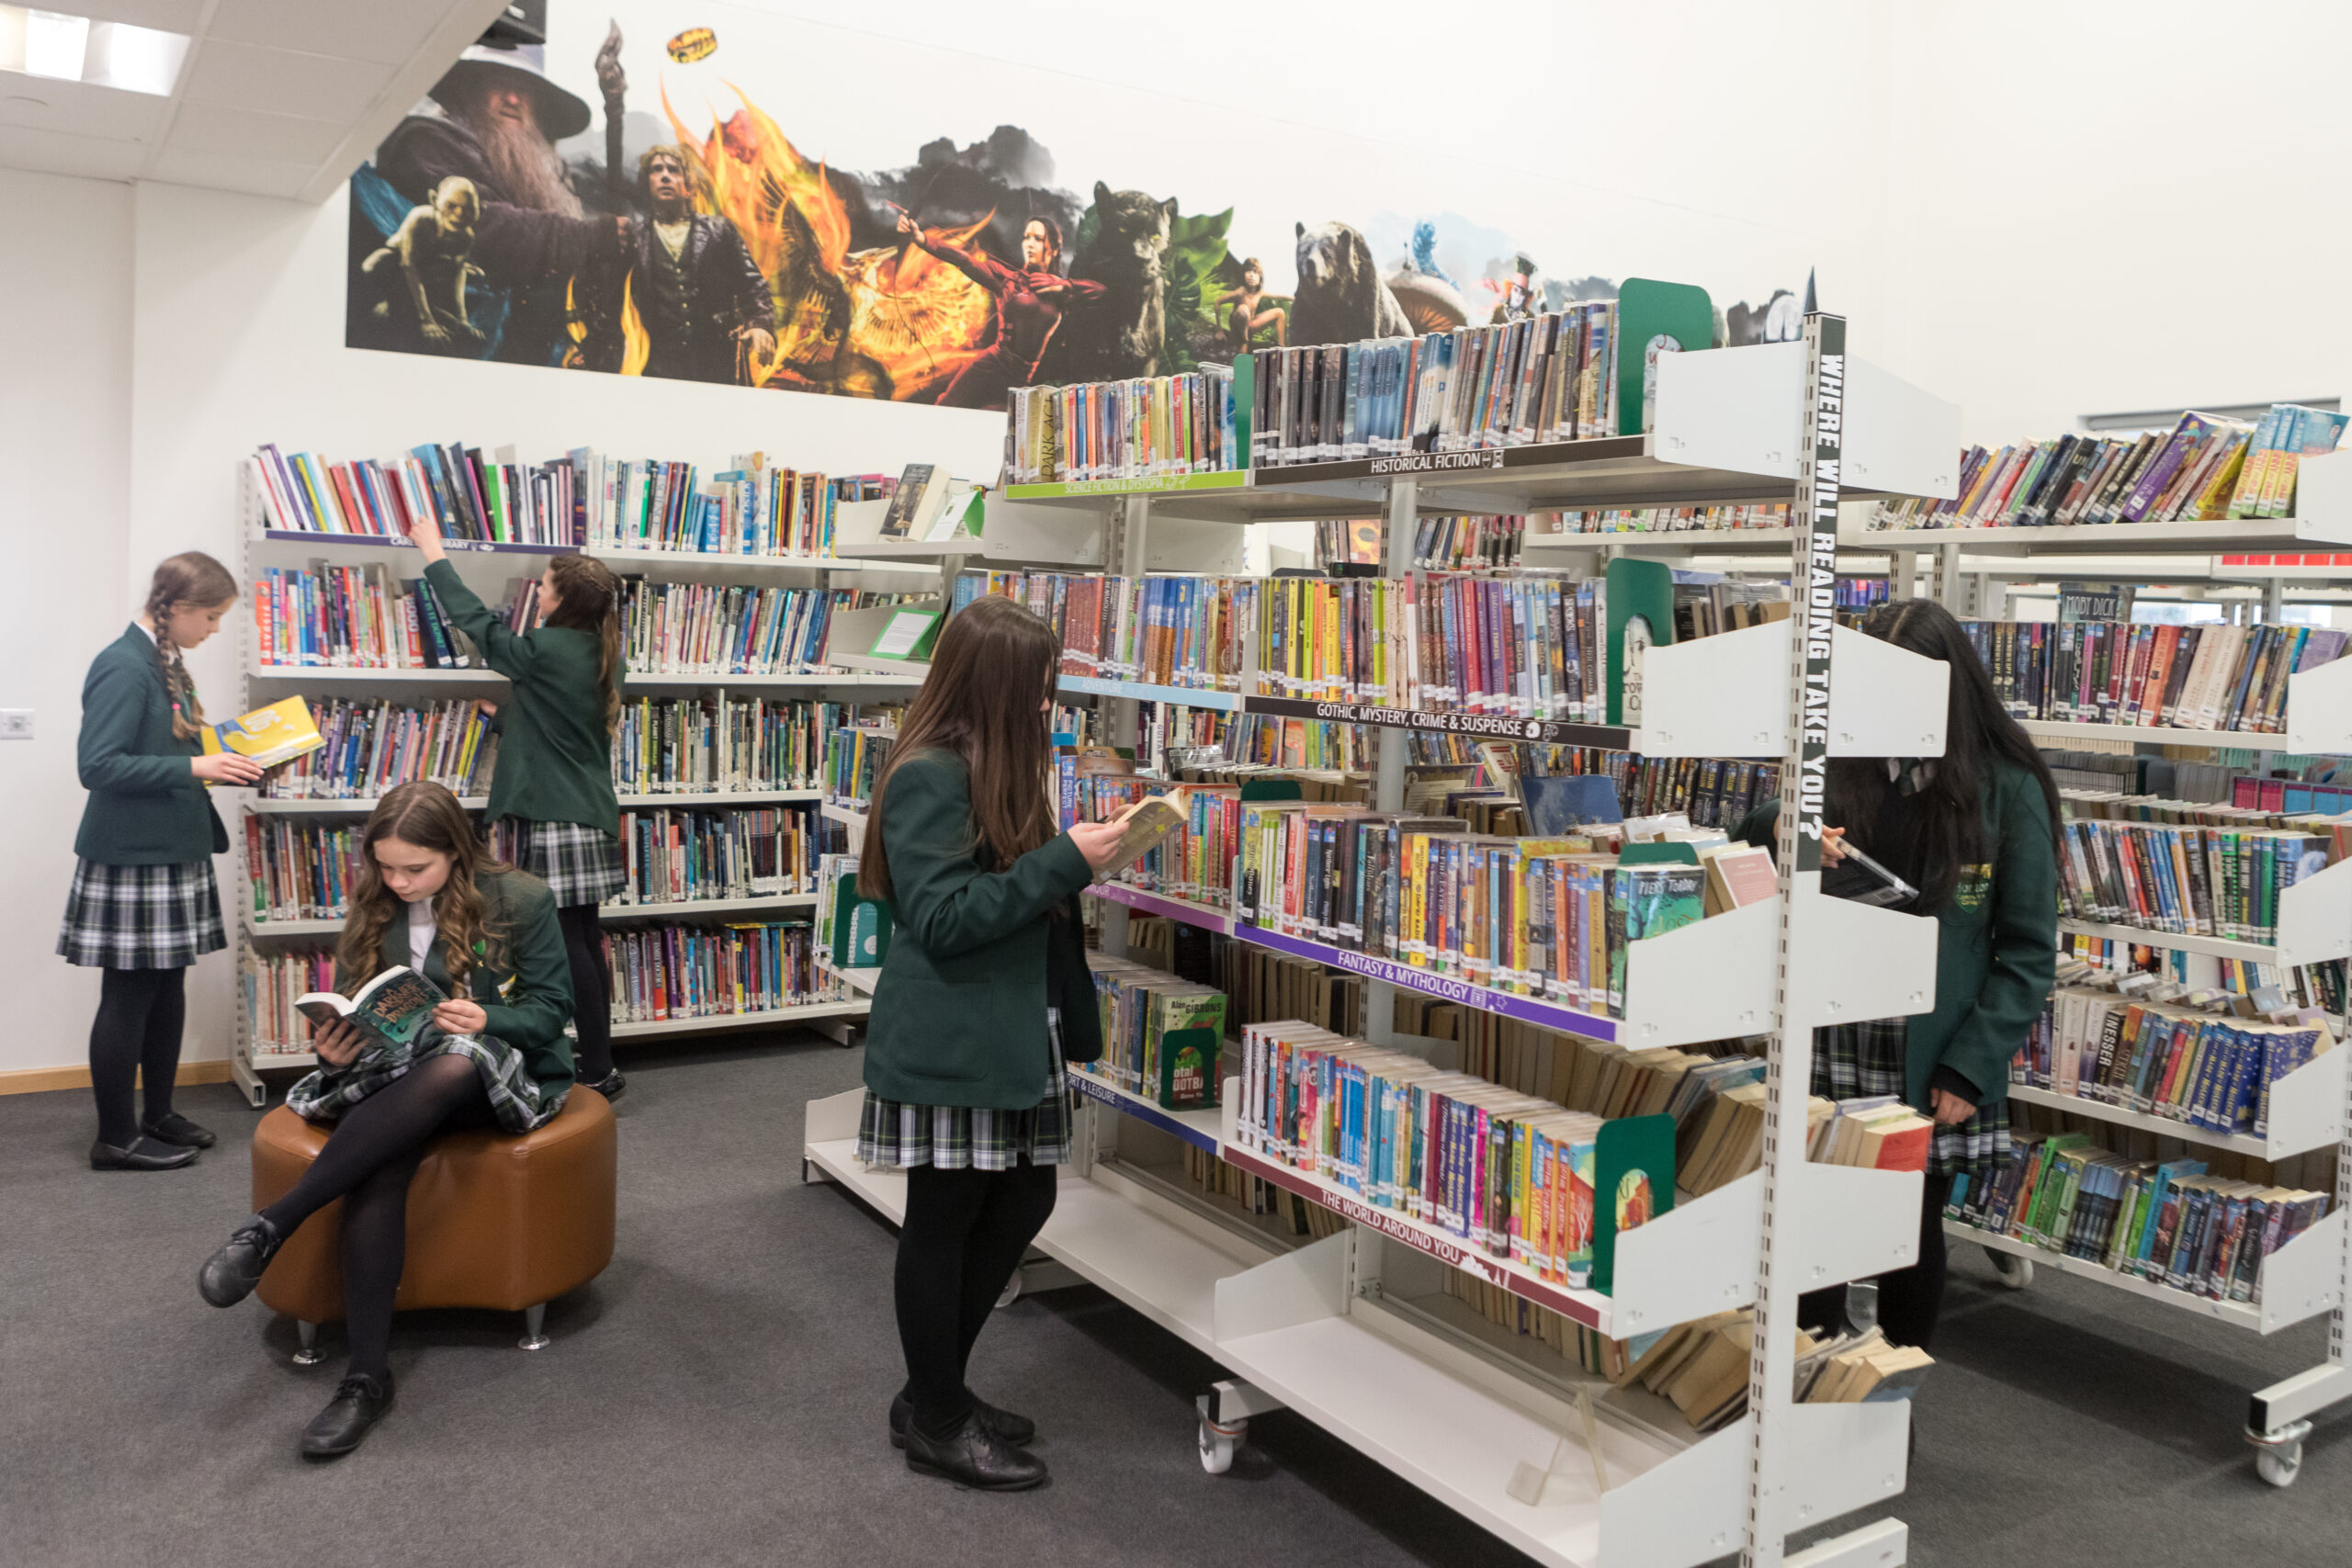 Horizon's Exciting New Library